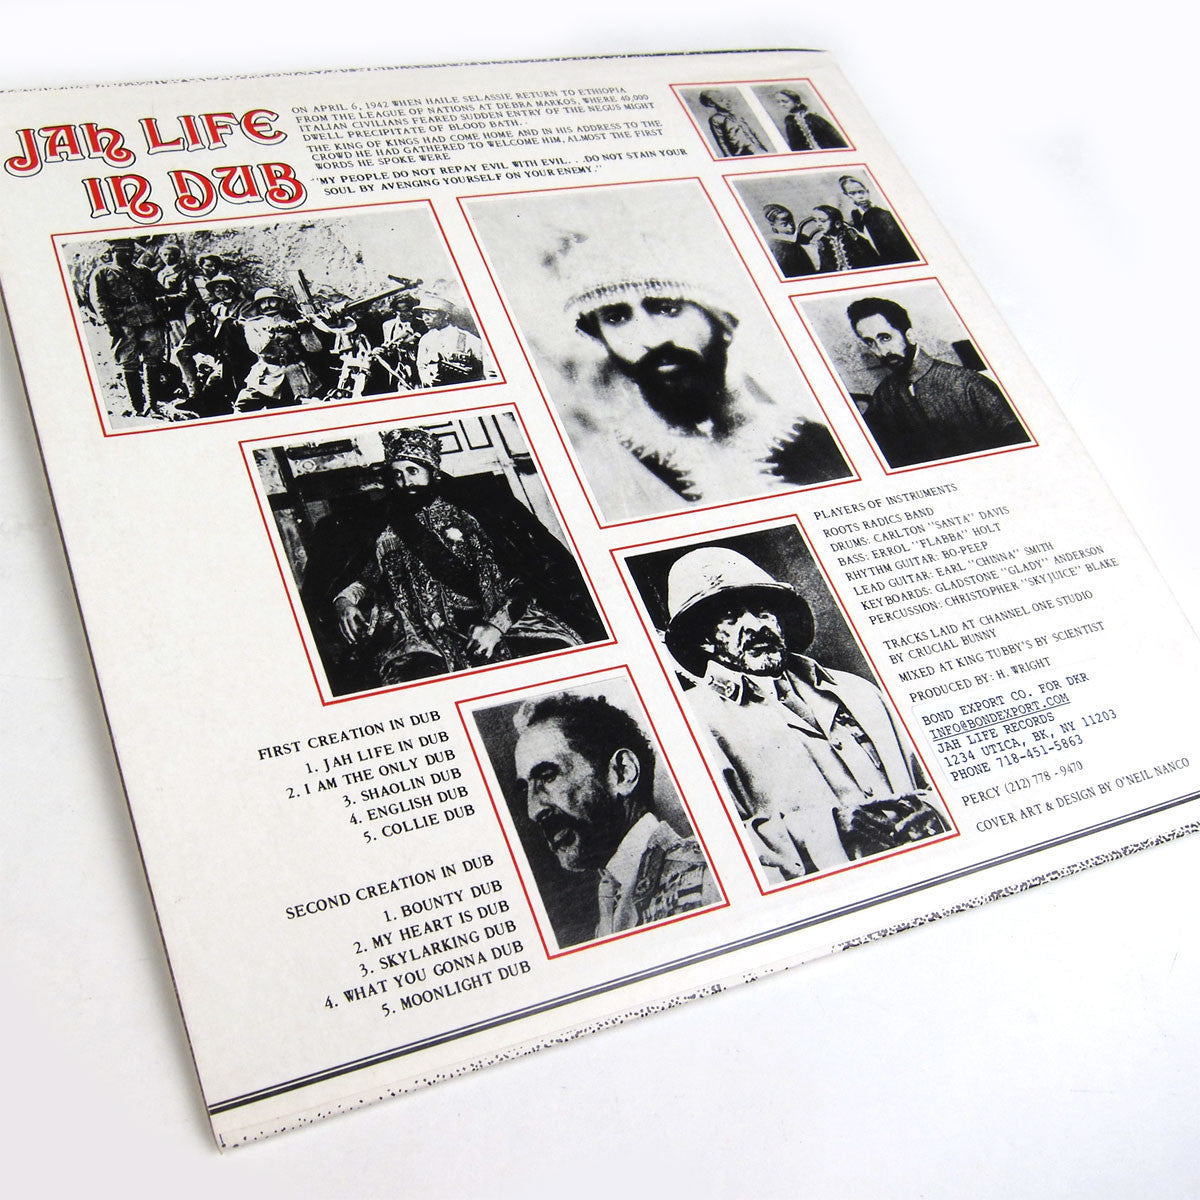 Scientist: Jah Life In Dub Vinyl LP - Original Pressing Cover back